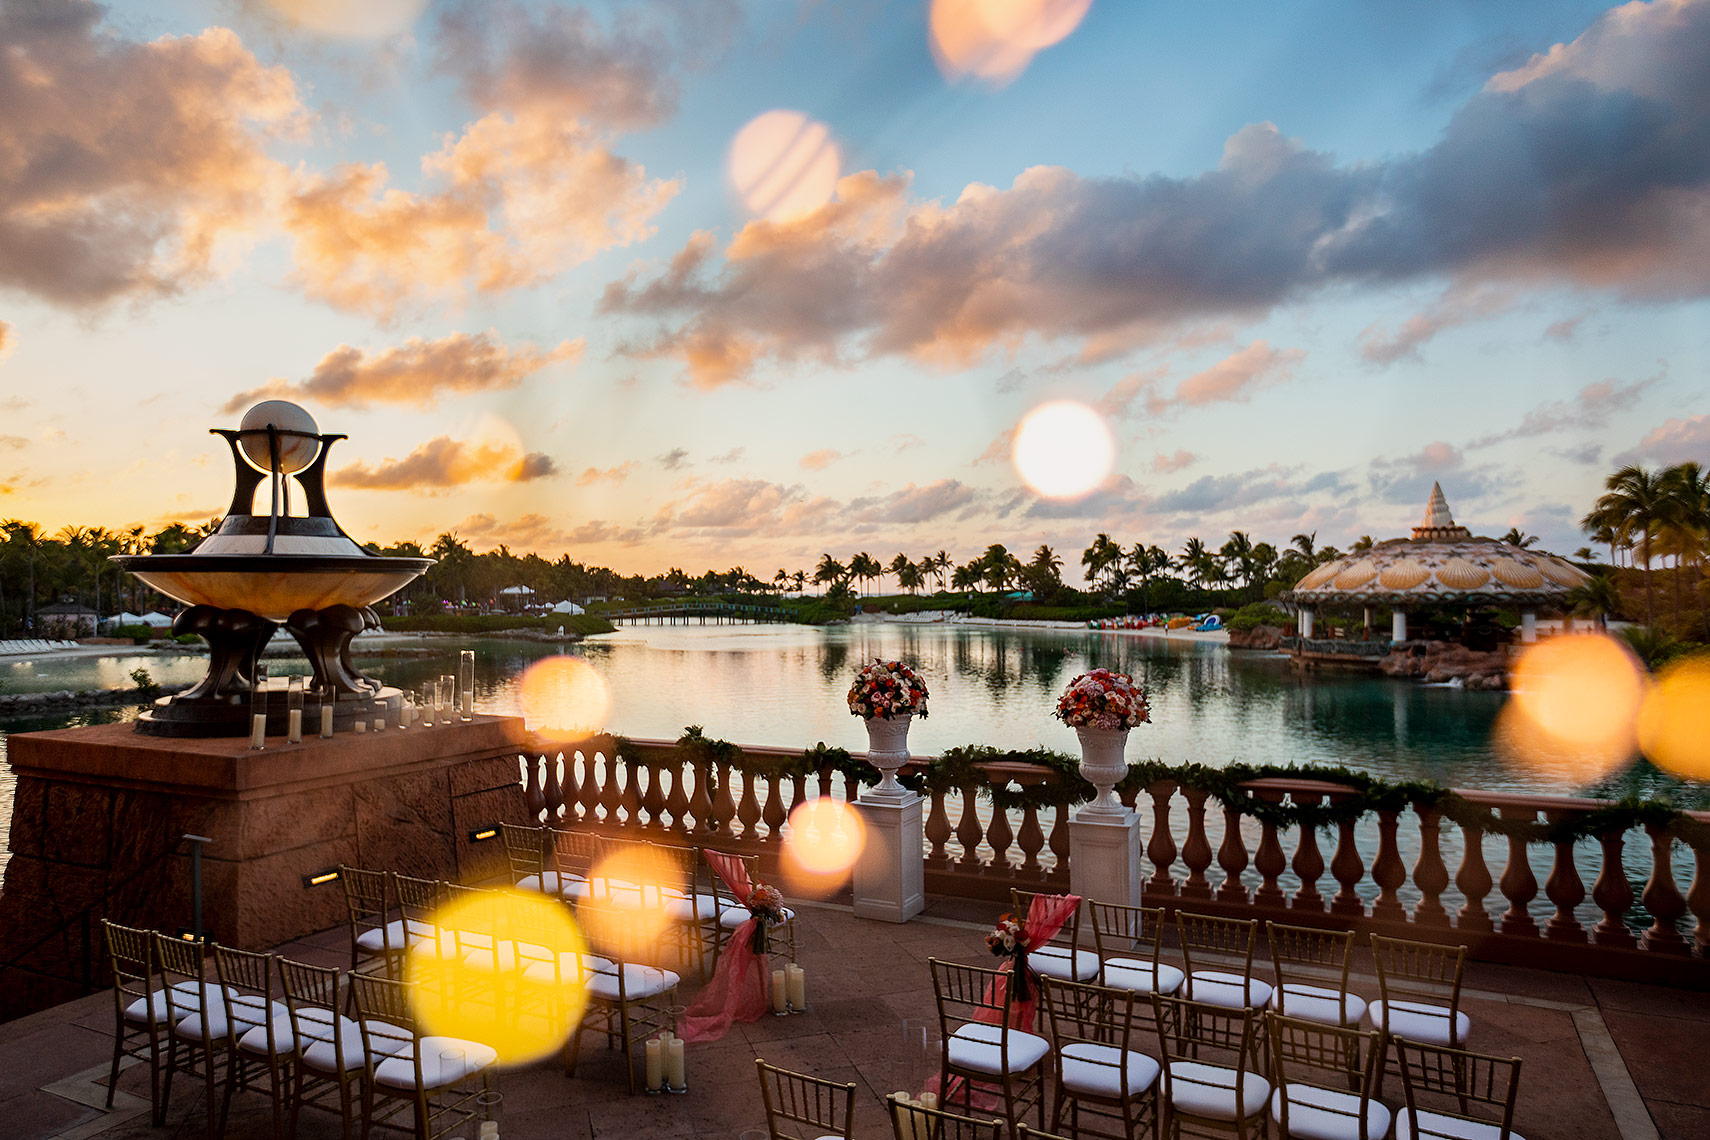 sunset wedding reception at Atlantis Paradise Island destination wedding ideas in the bahamas